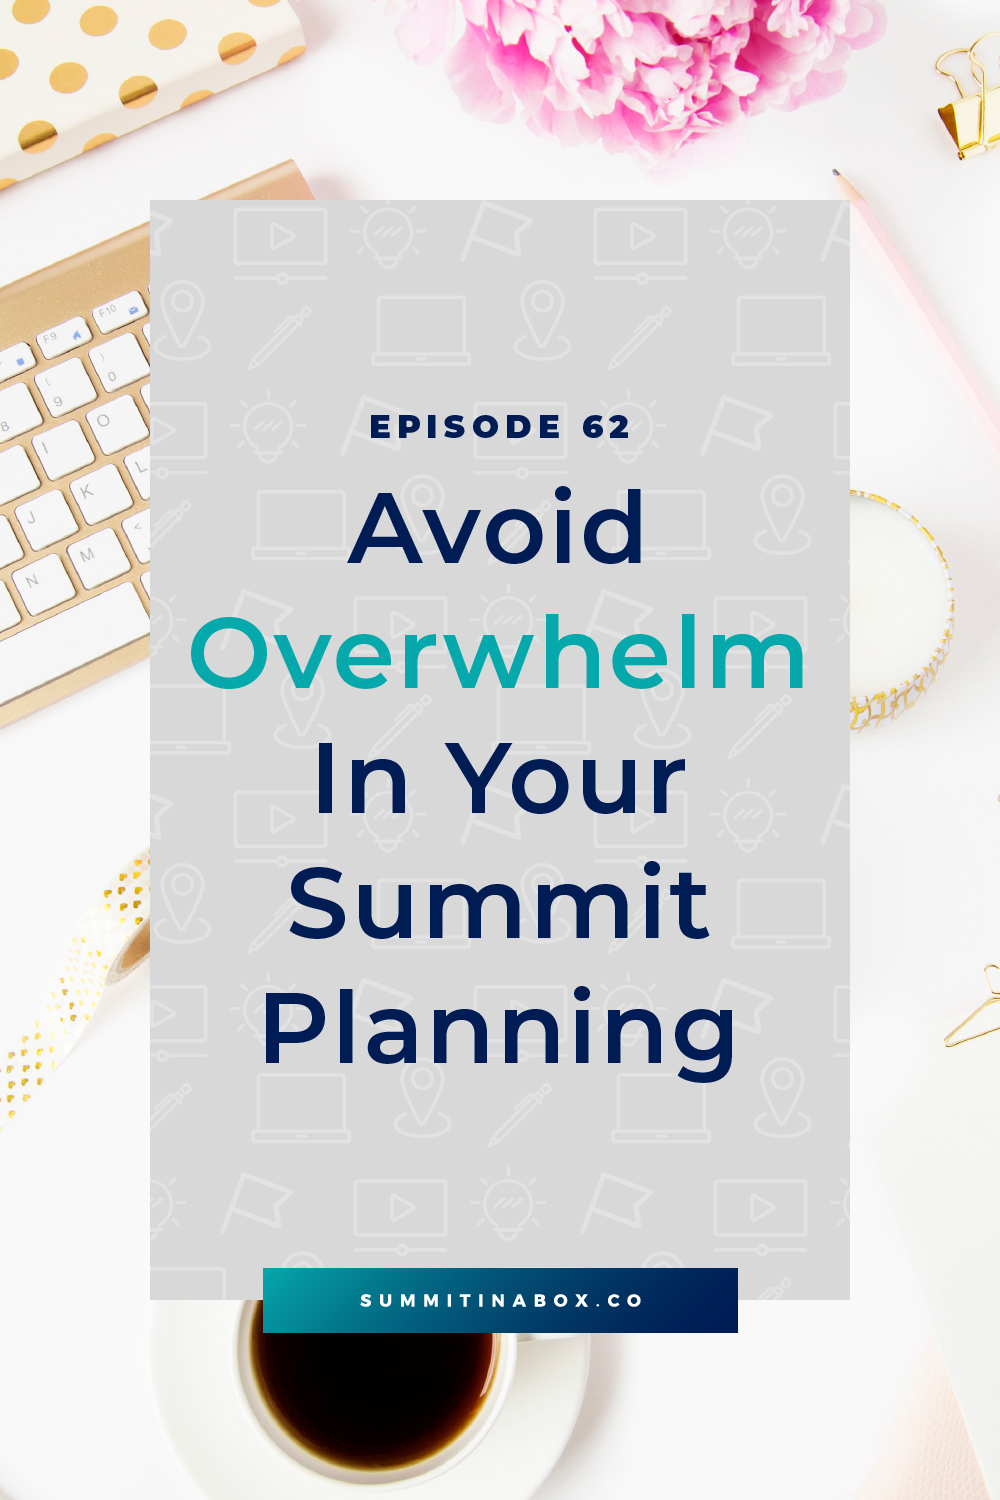 Many hosts begin the summit planning process and end up overwhelmed from the start. Let's break down how to avoid overwhelm in your virtual summit planning.